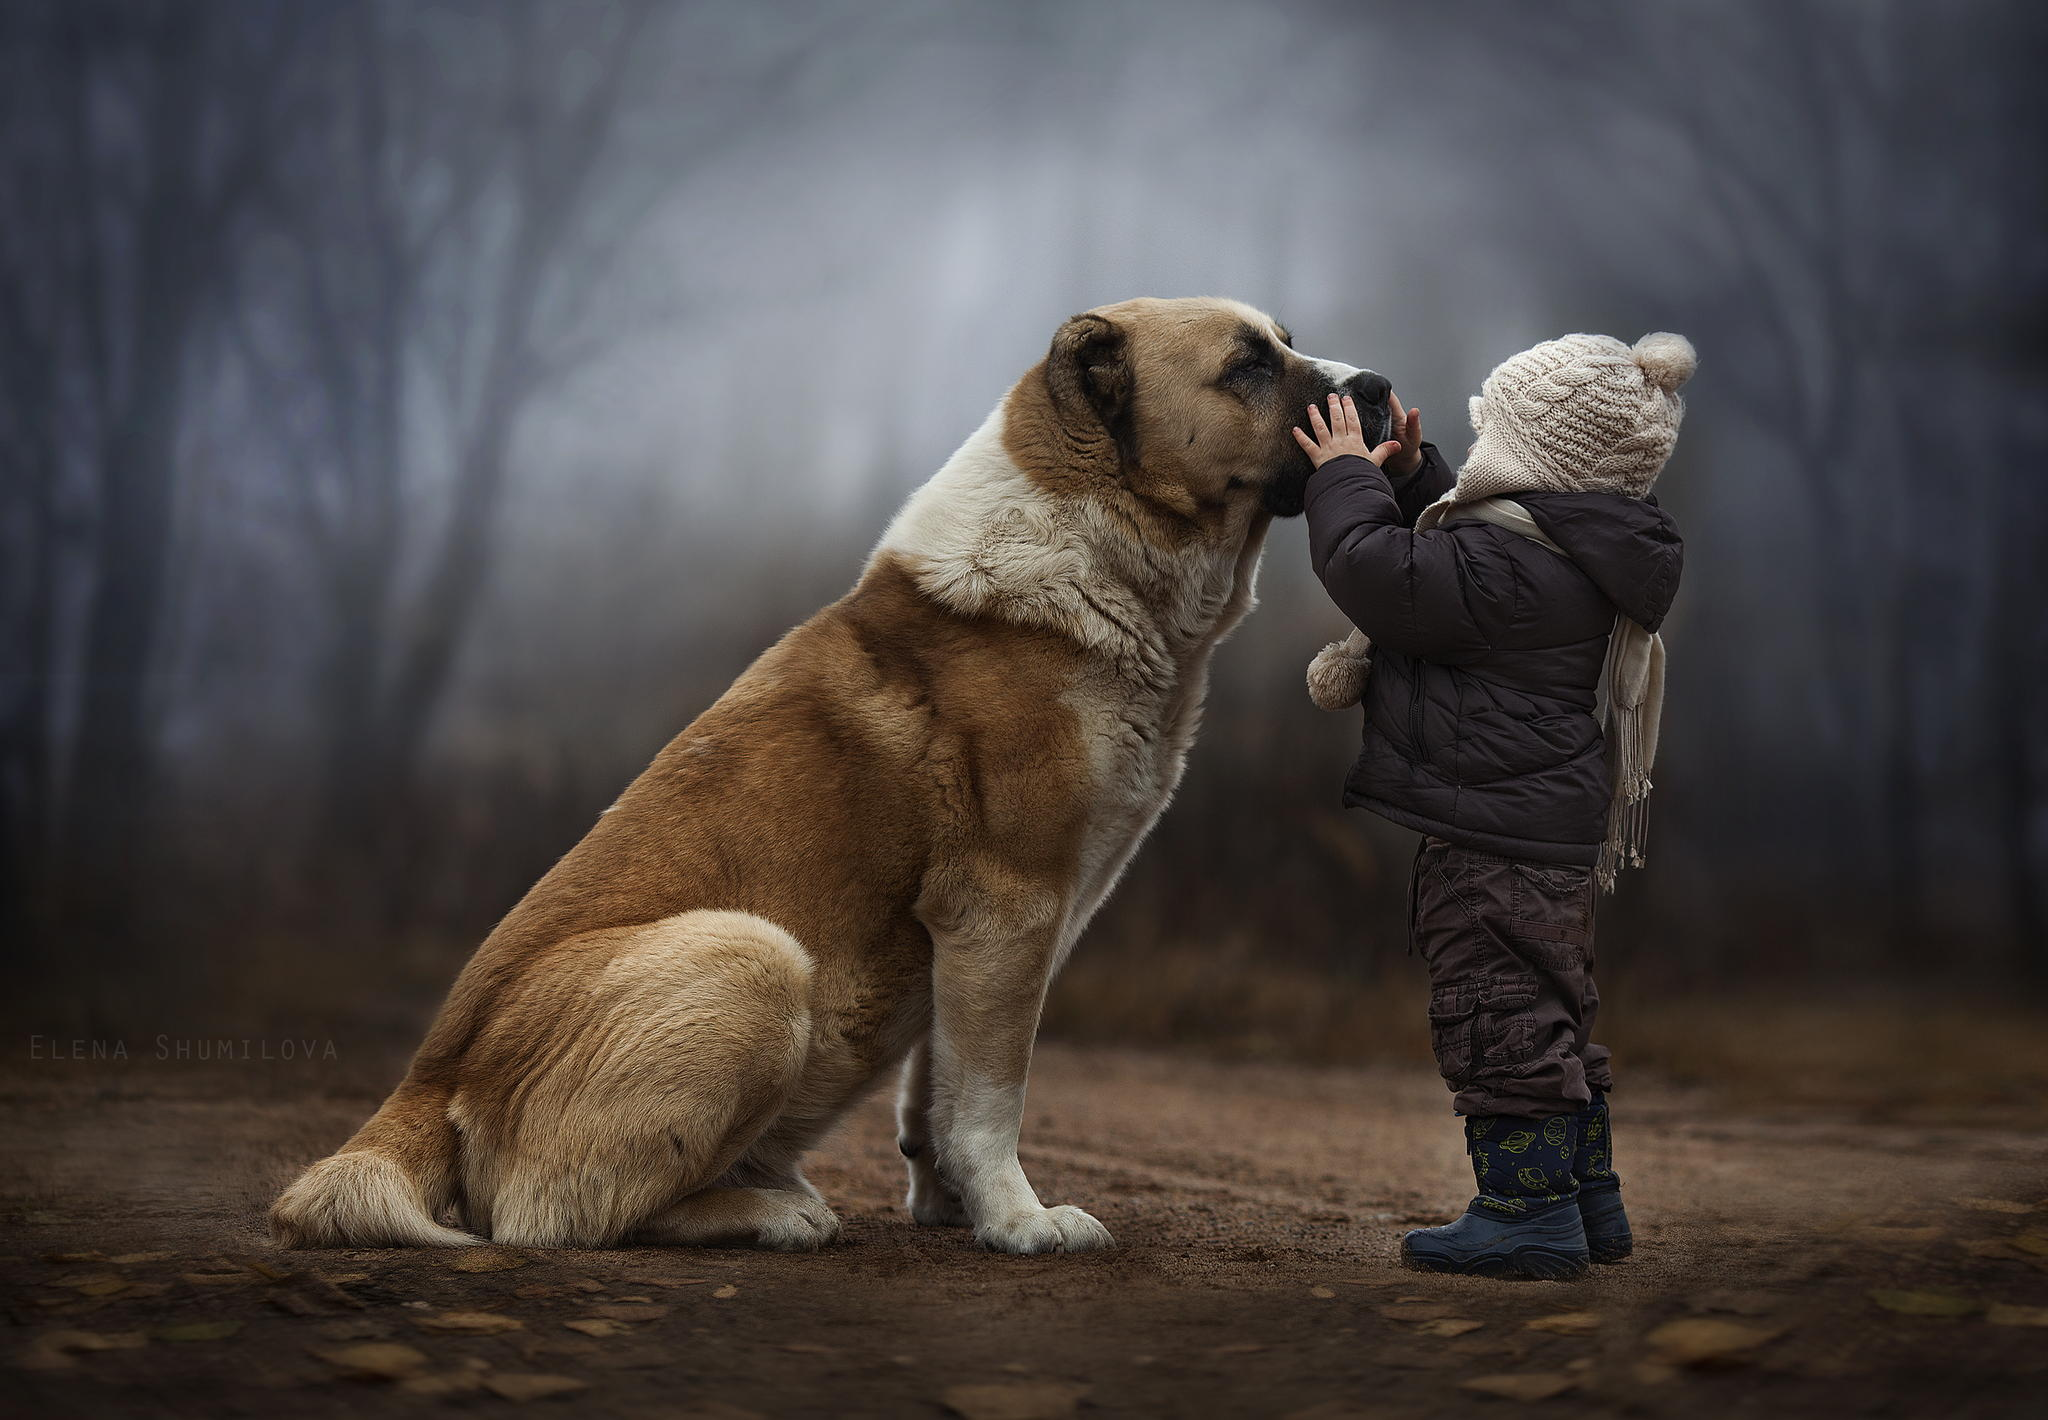 Elena Shumilova — photography @ ShockBlast